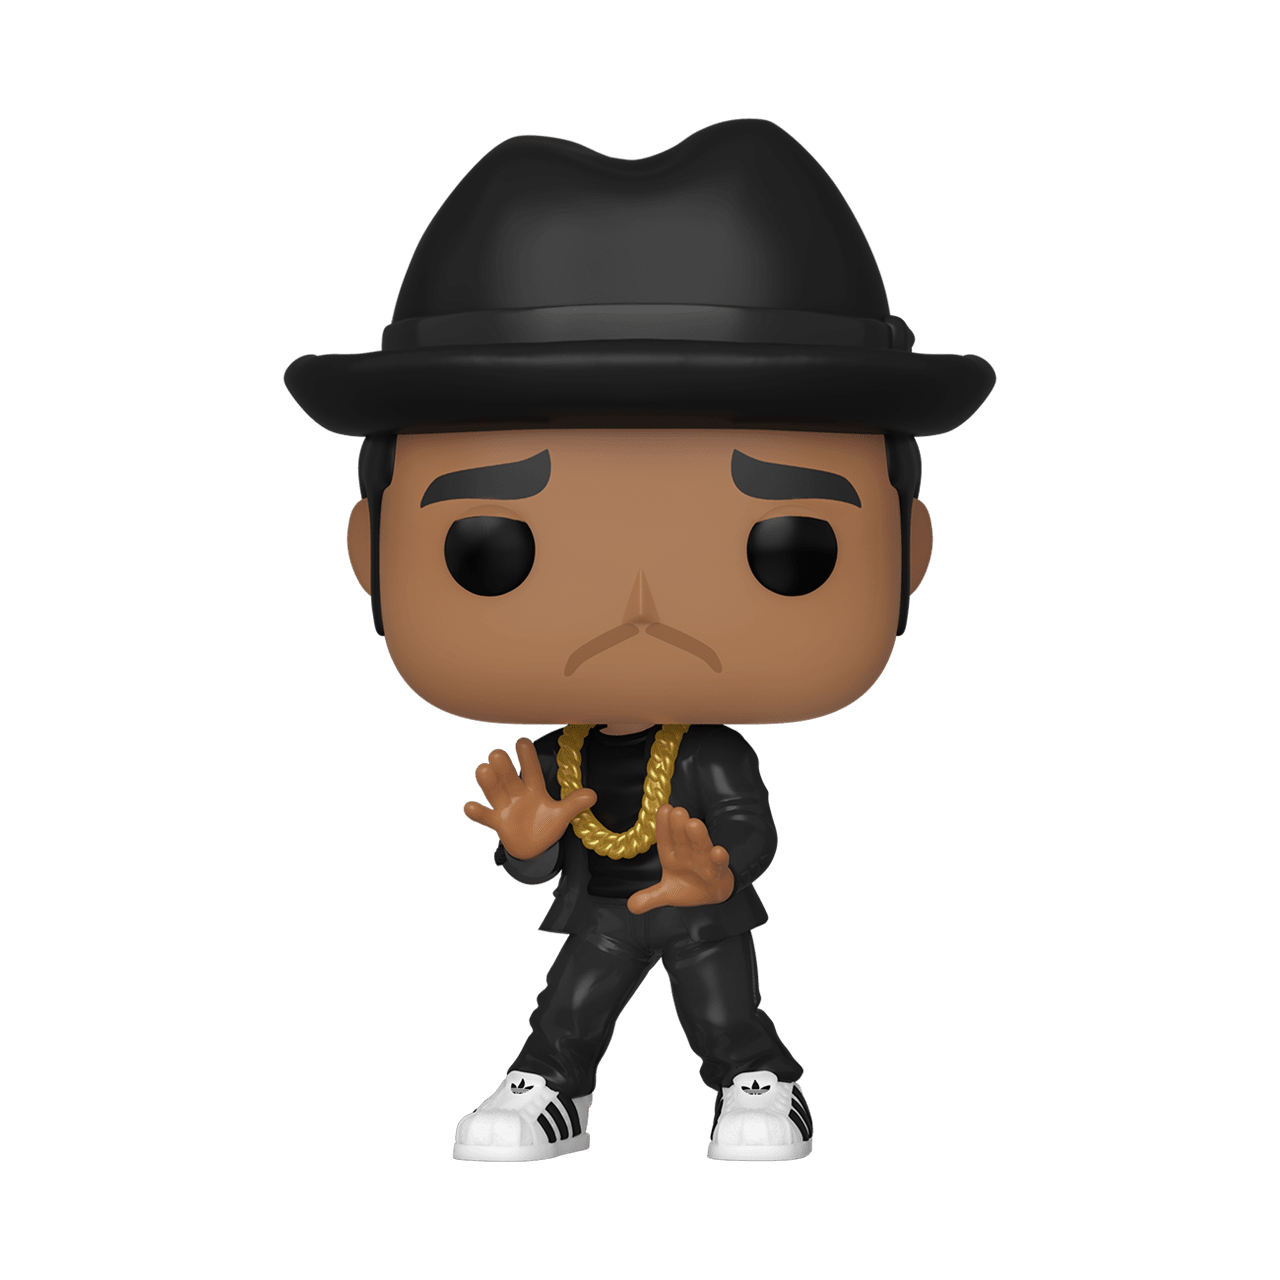 Run (199) Run DMC Pop Vinyl - 1